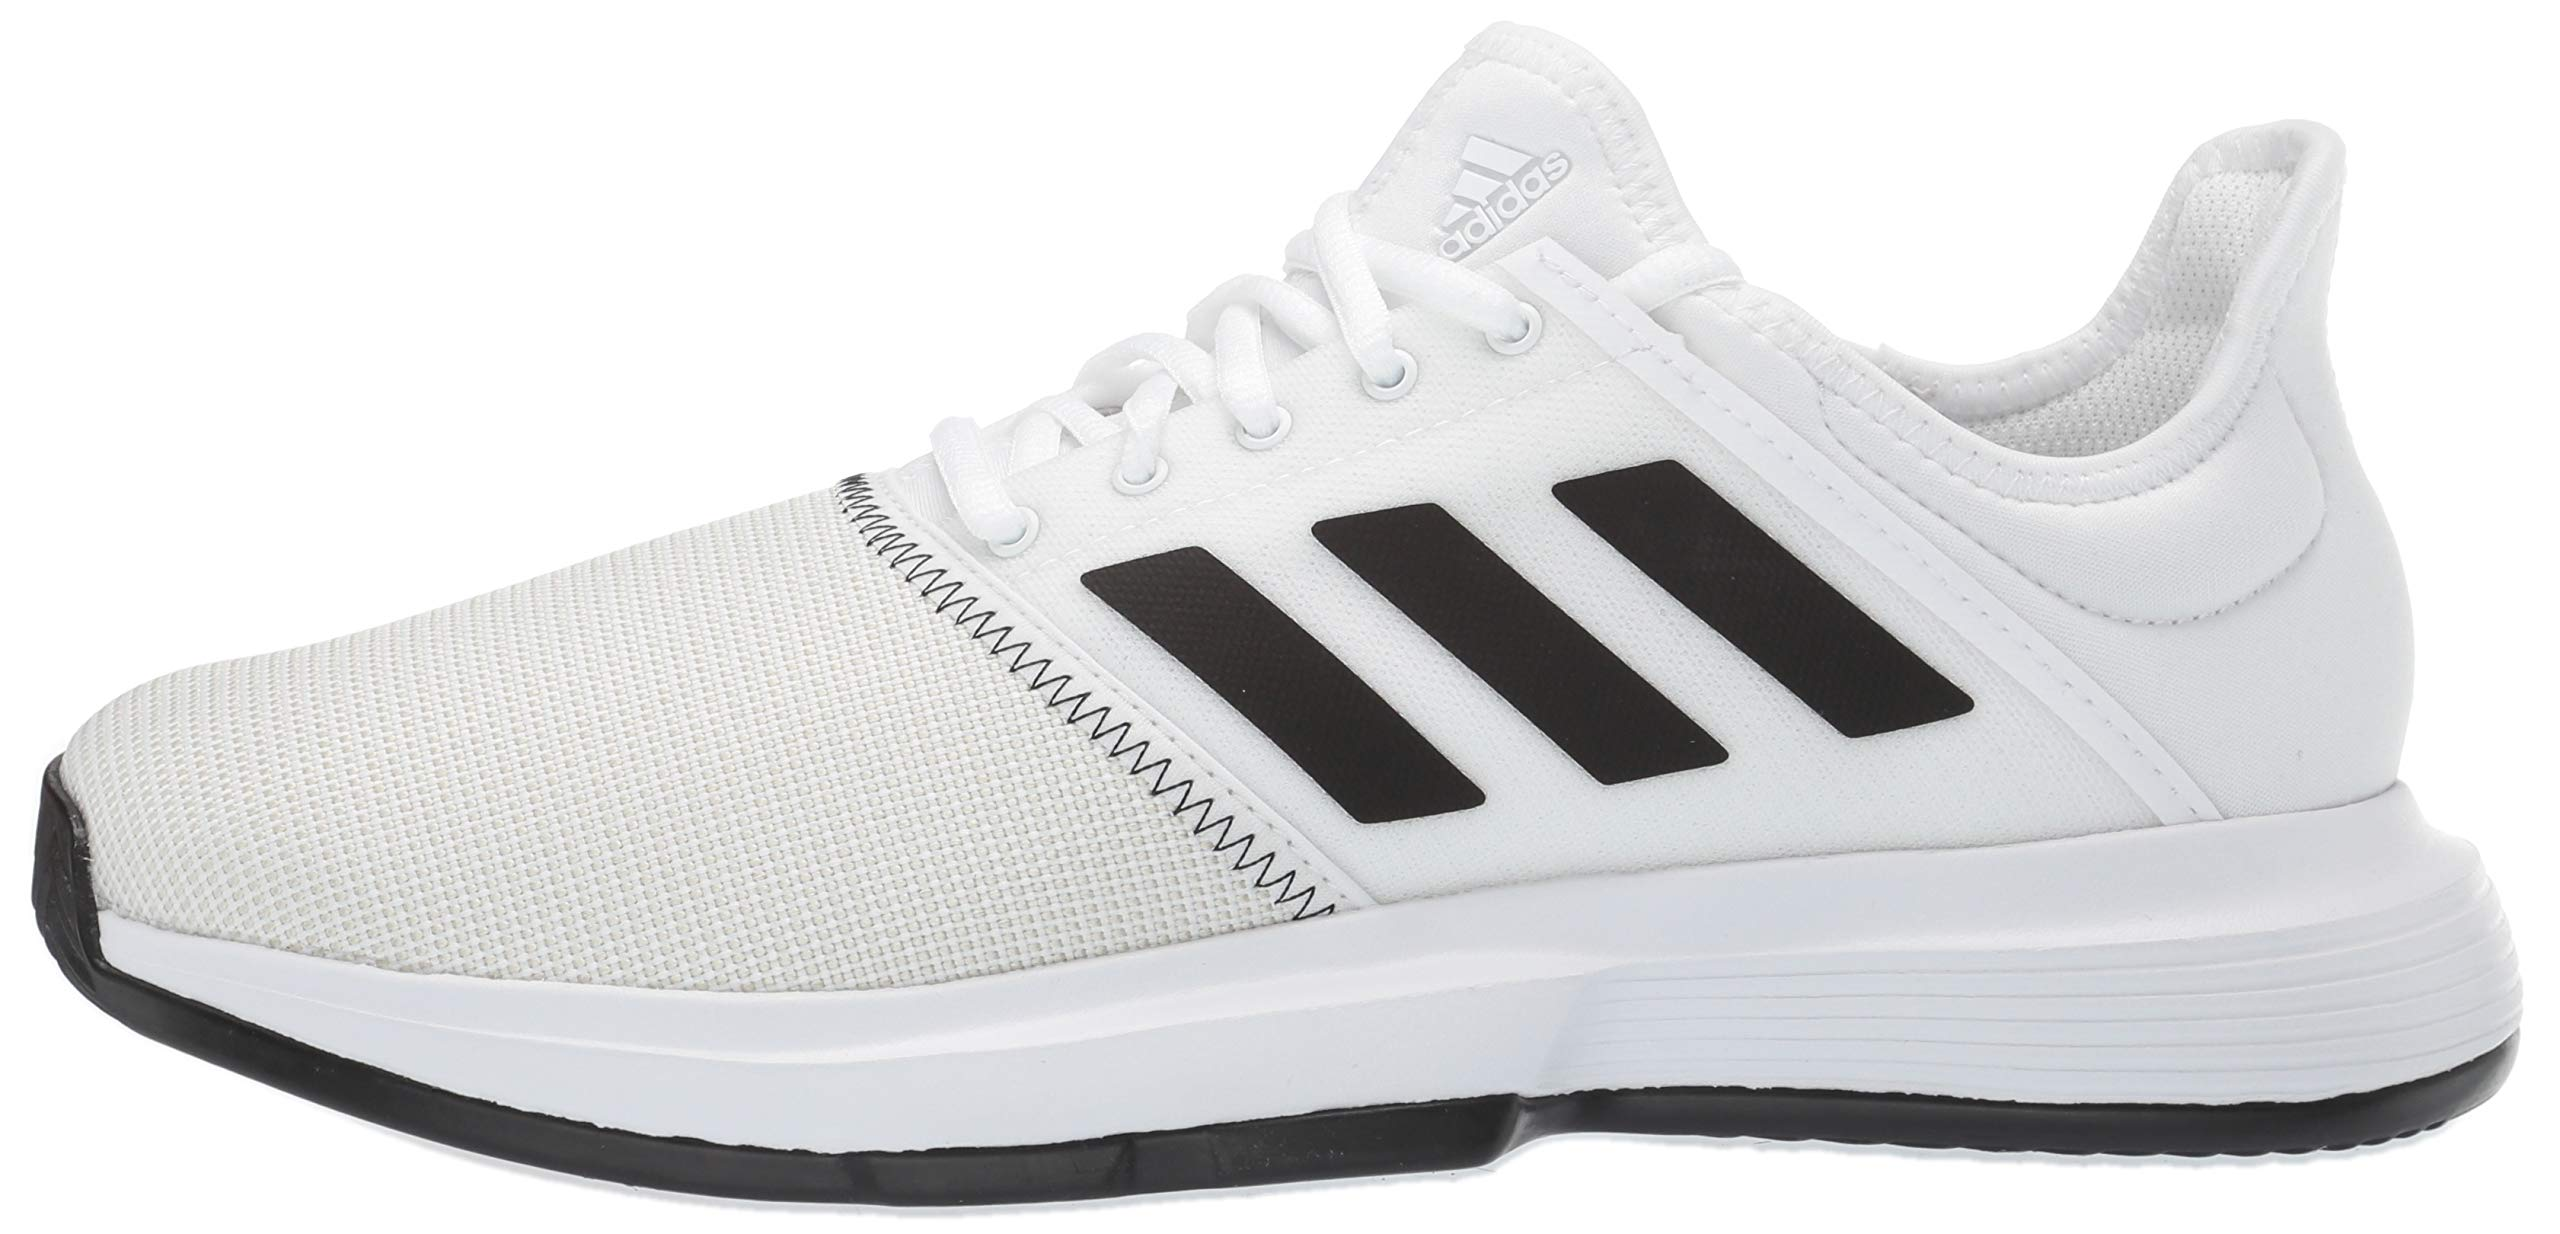 adidas Men's Gamecourt, White/Black/Grey 6.5 M US by adidas (Image #5)